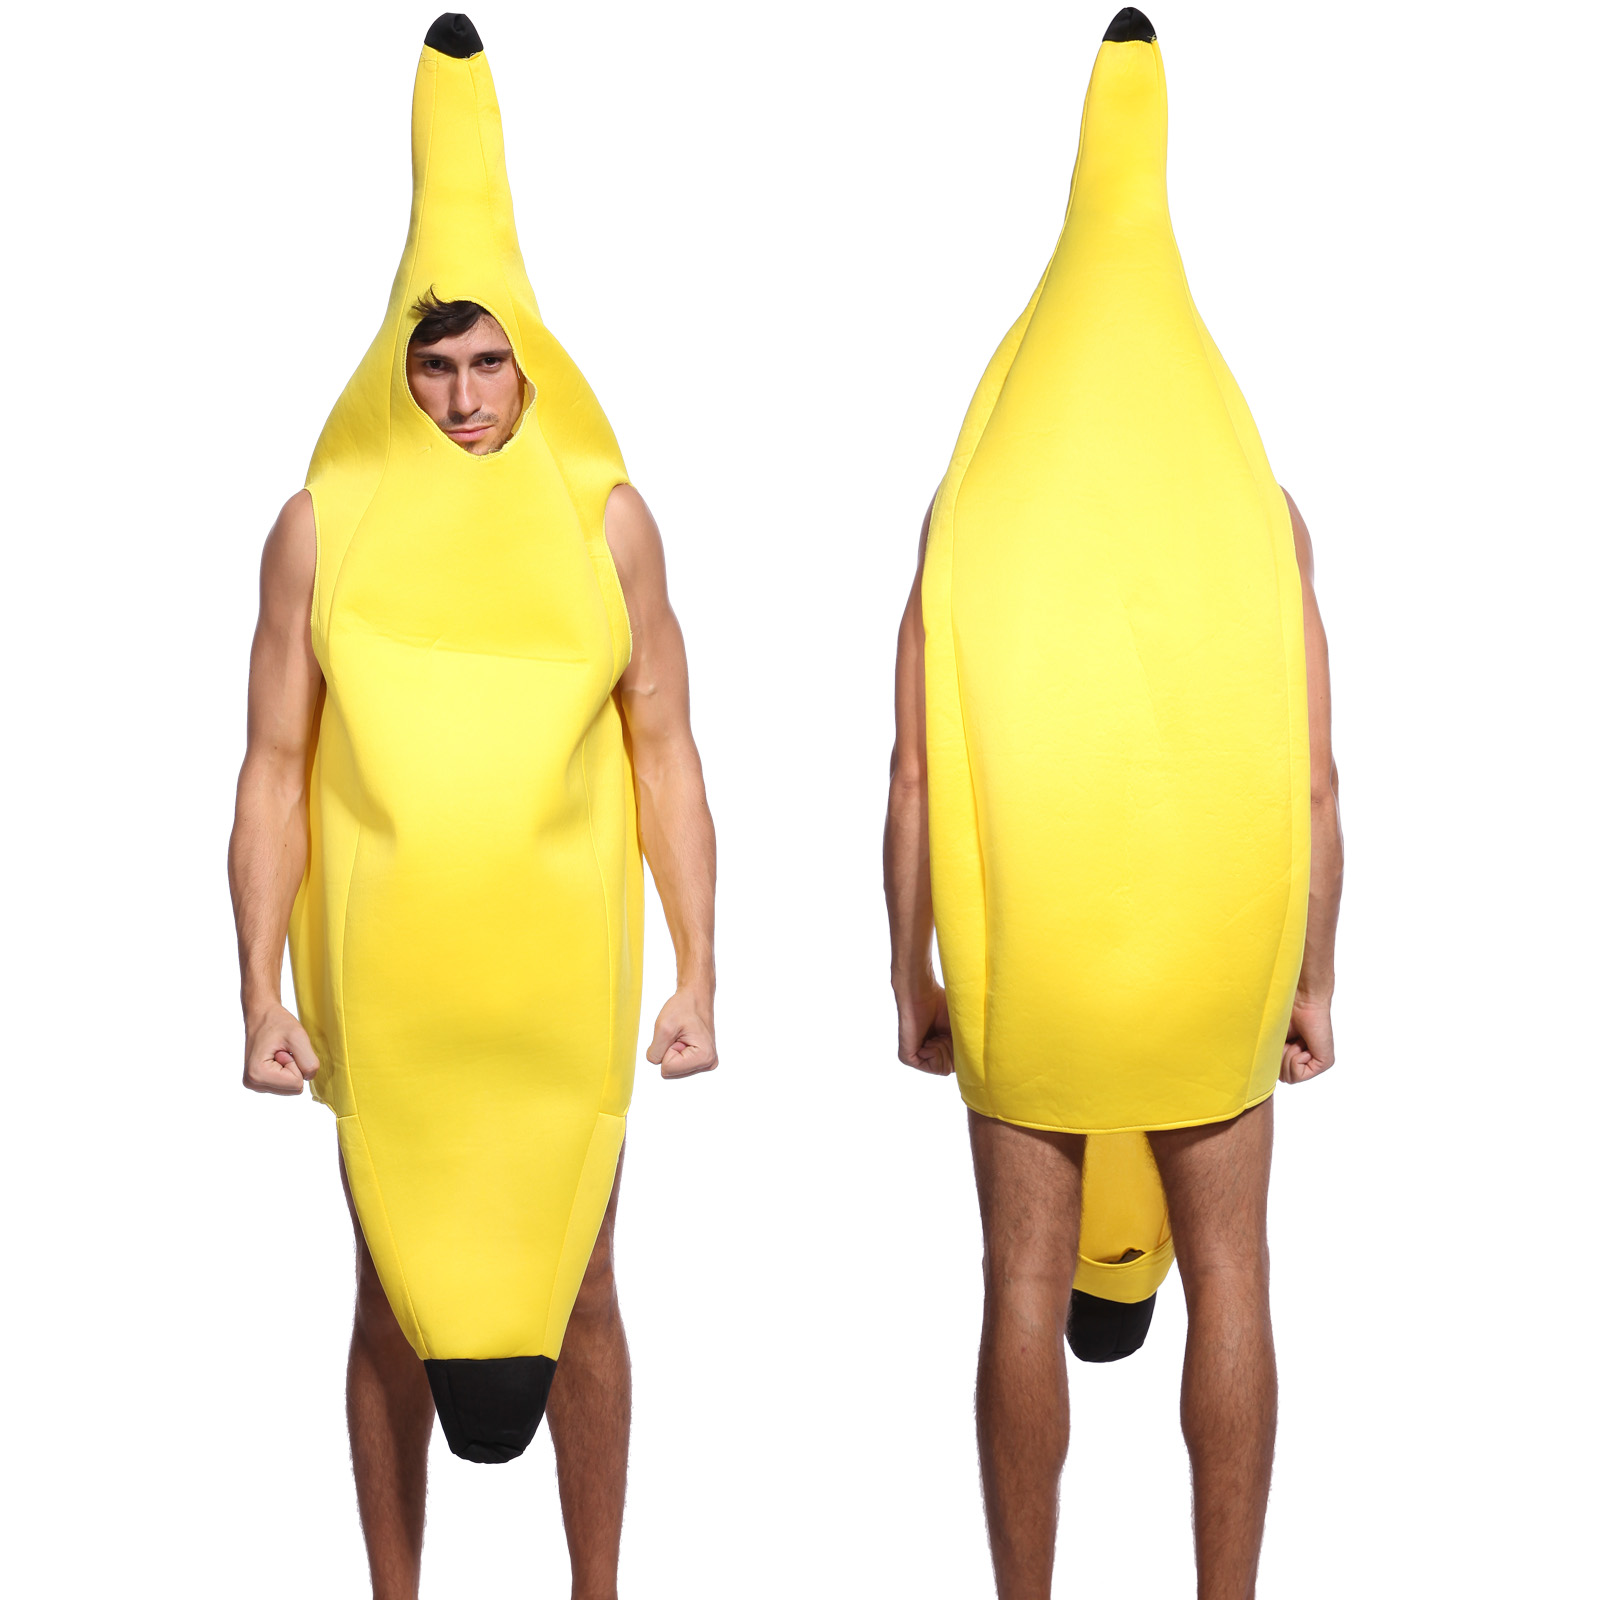 Experience banana together, where you can randomly chat with other gay strangers. Laugh, have a good time, and perhaps make a new friend. Have meaningful conversations and find a .